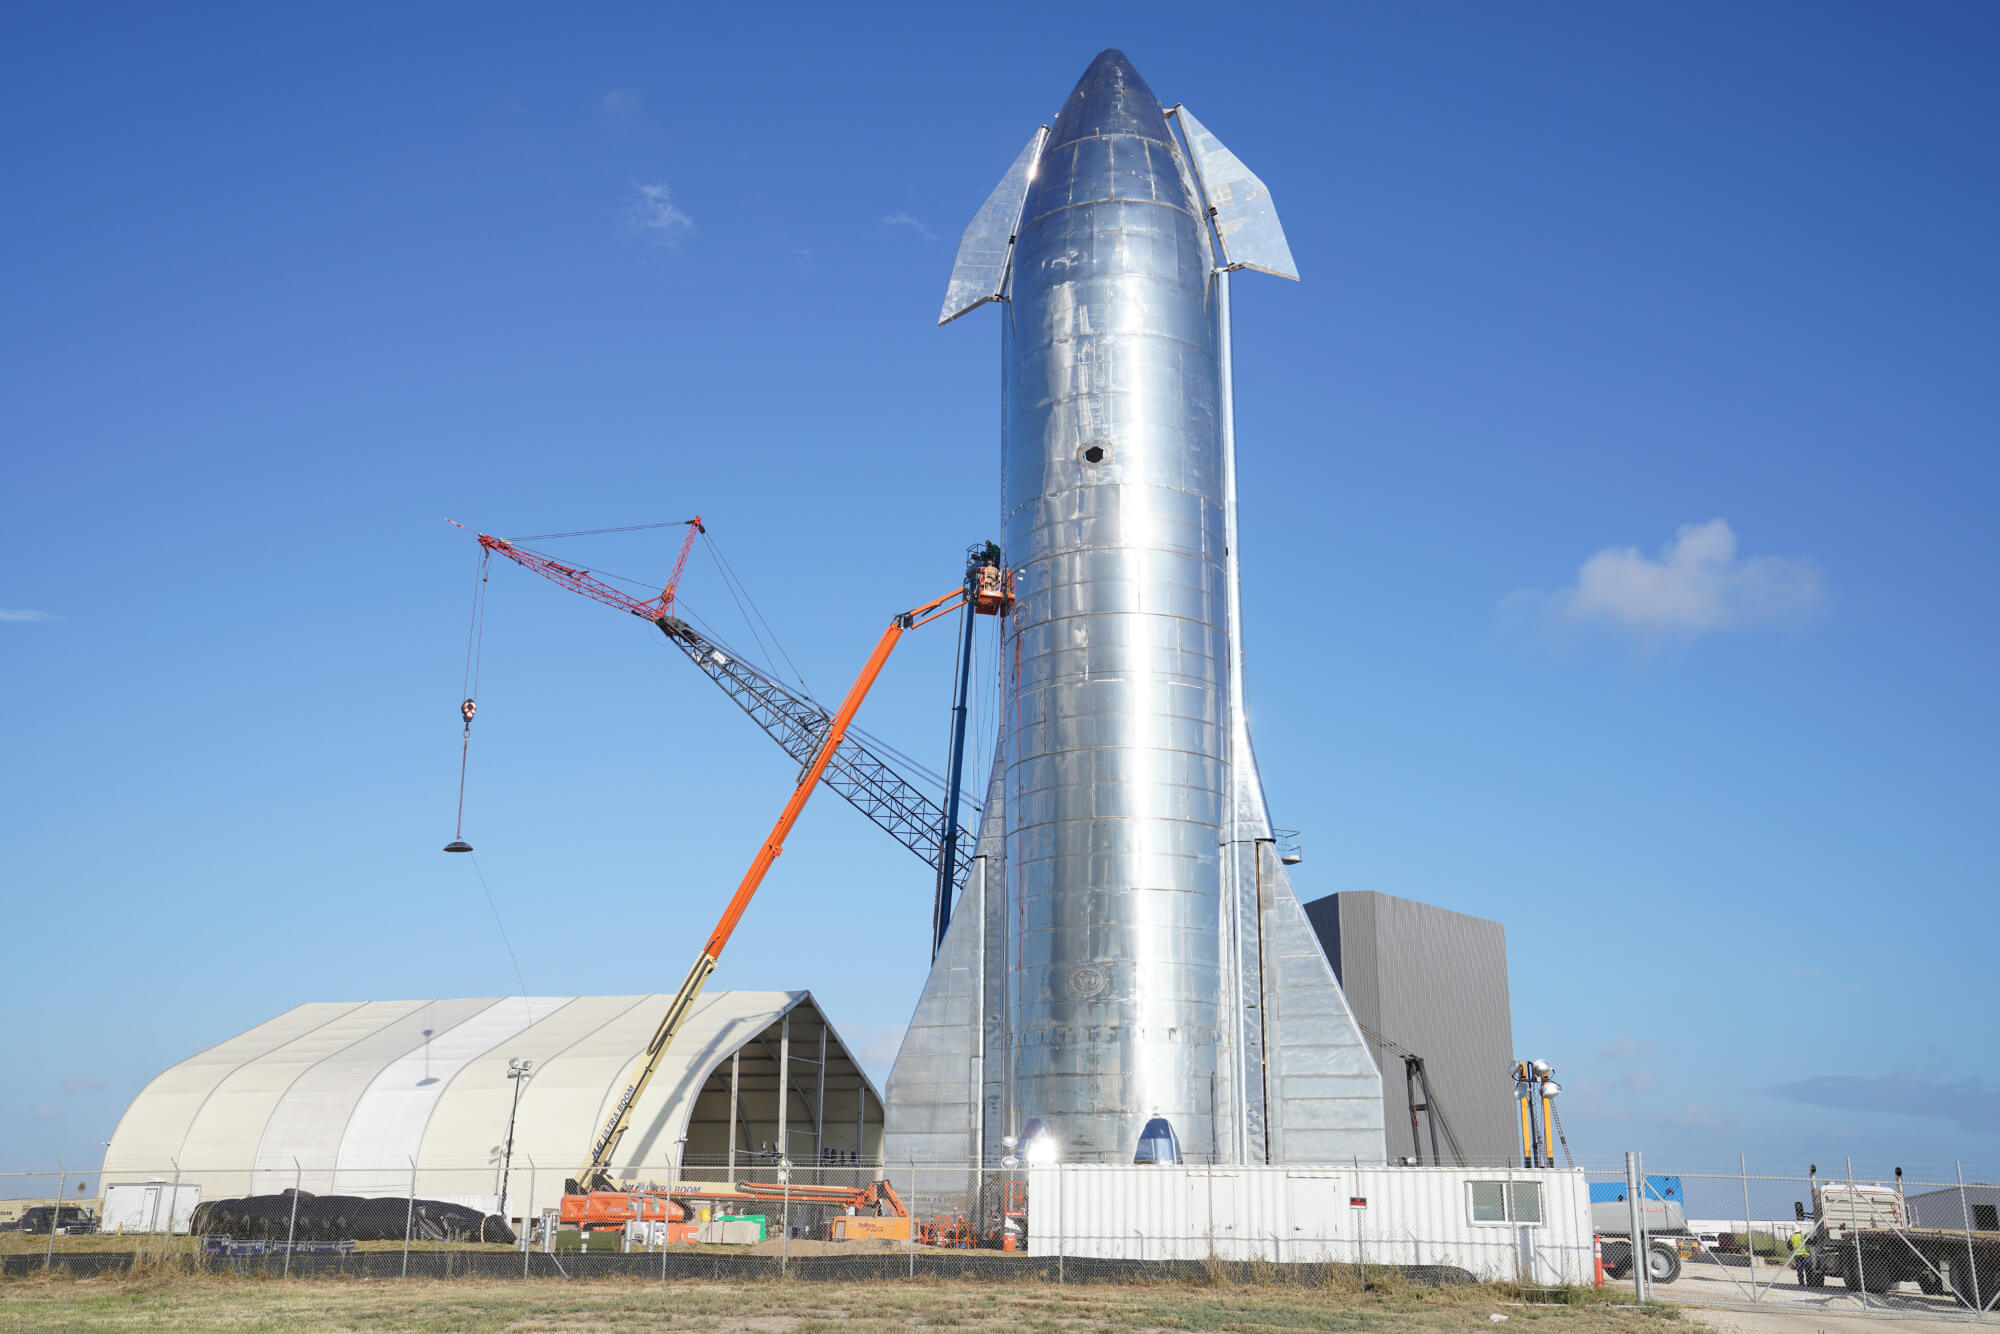 SpaceX plans high-altitude test flight for its SN8 starship next week